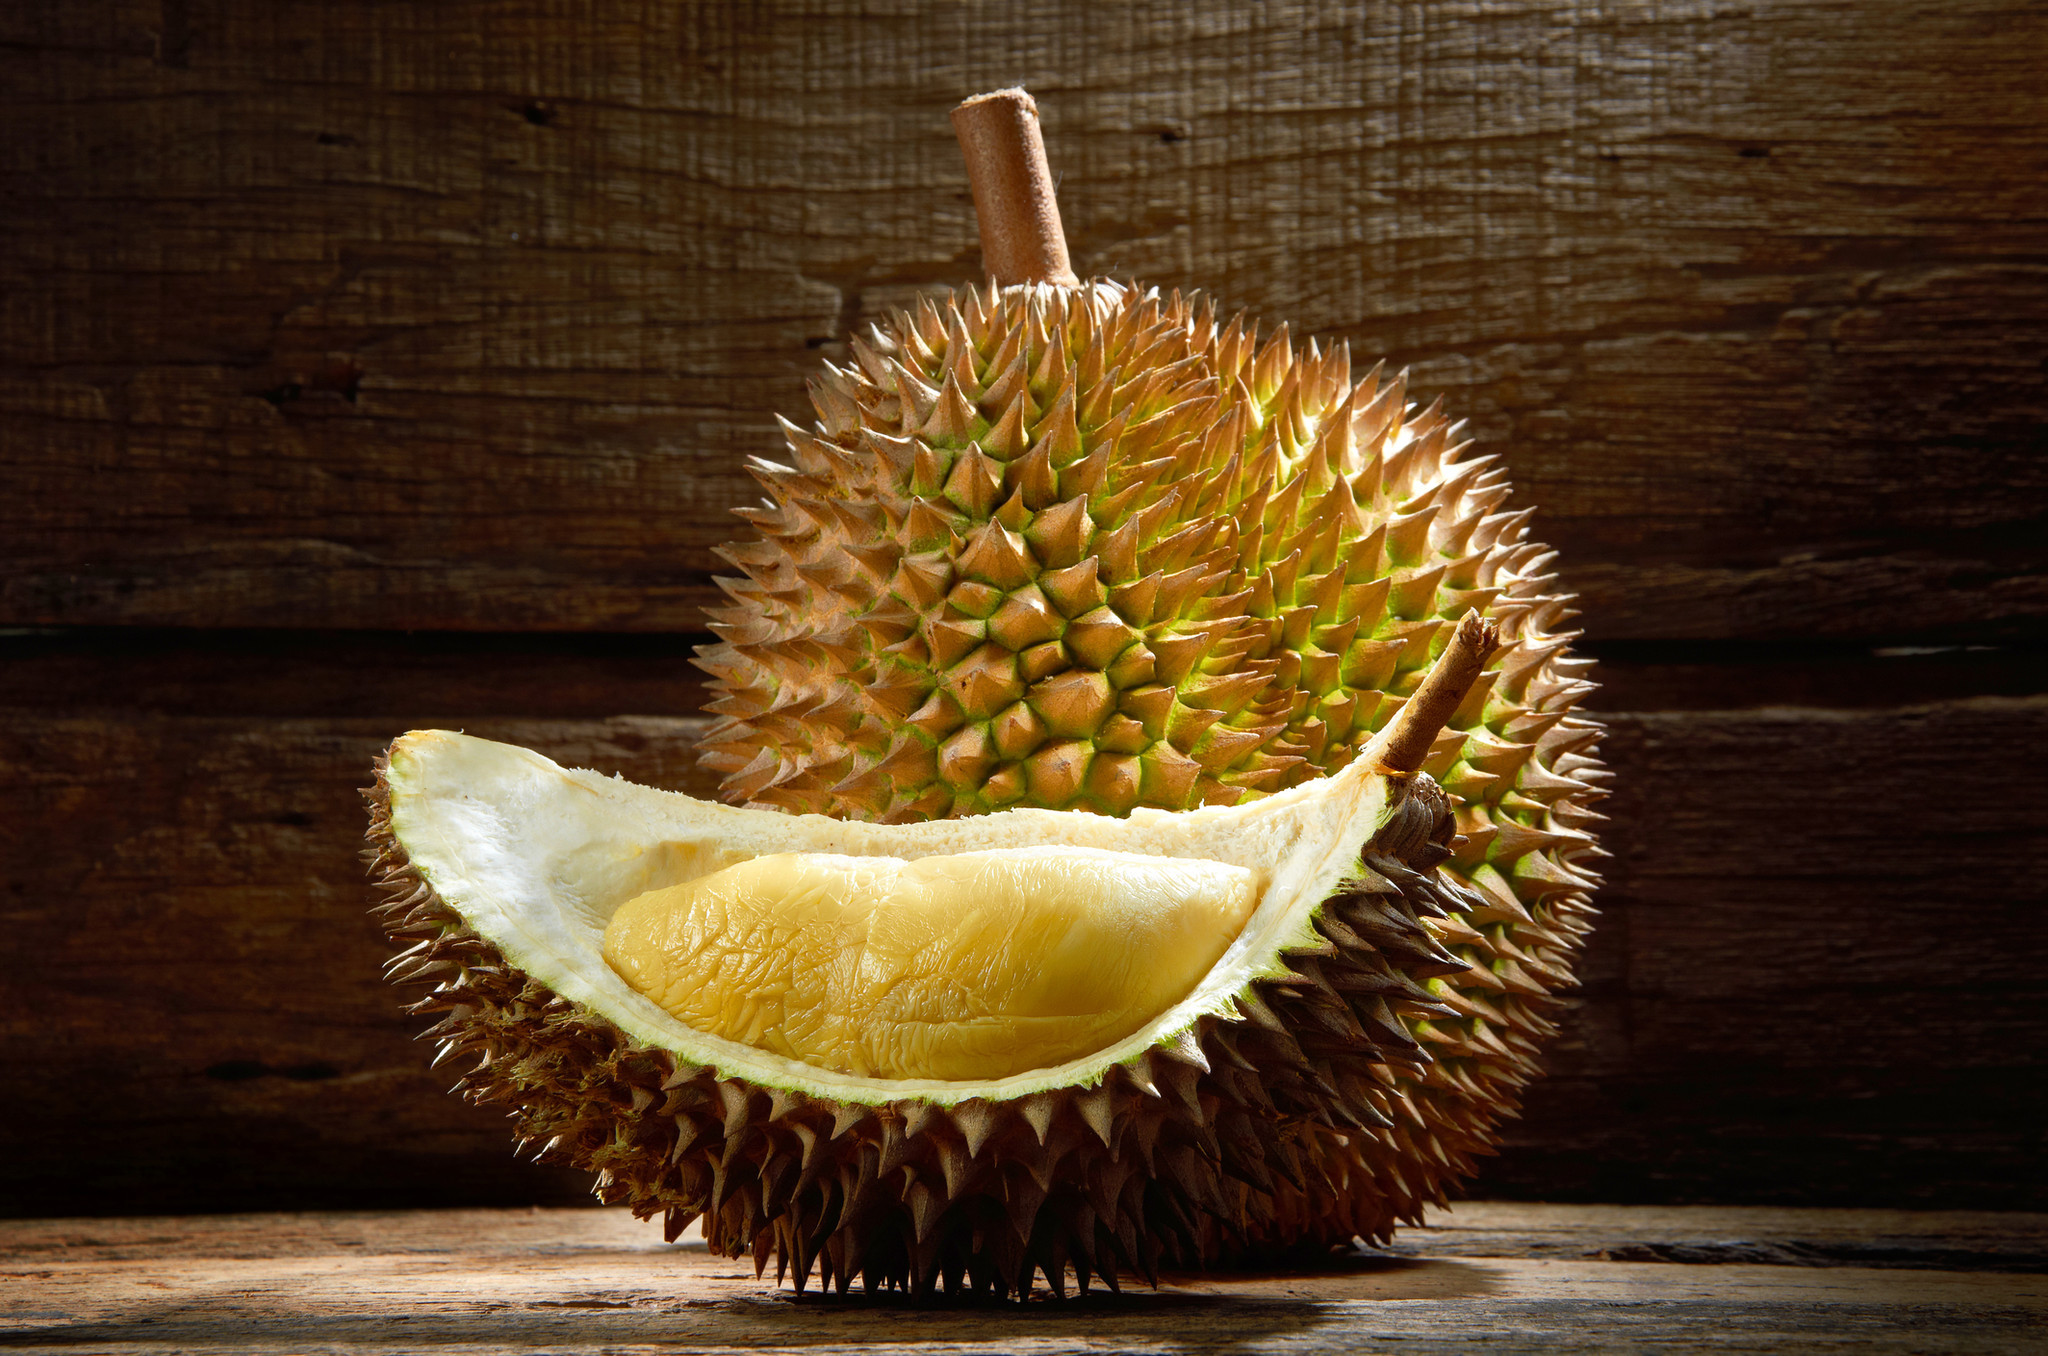 Enjoy the taste of Musang King at Kungfu Durian